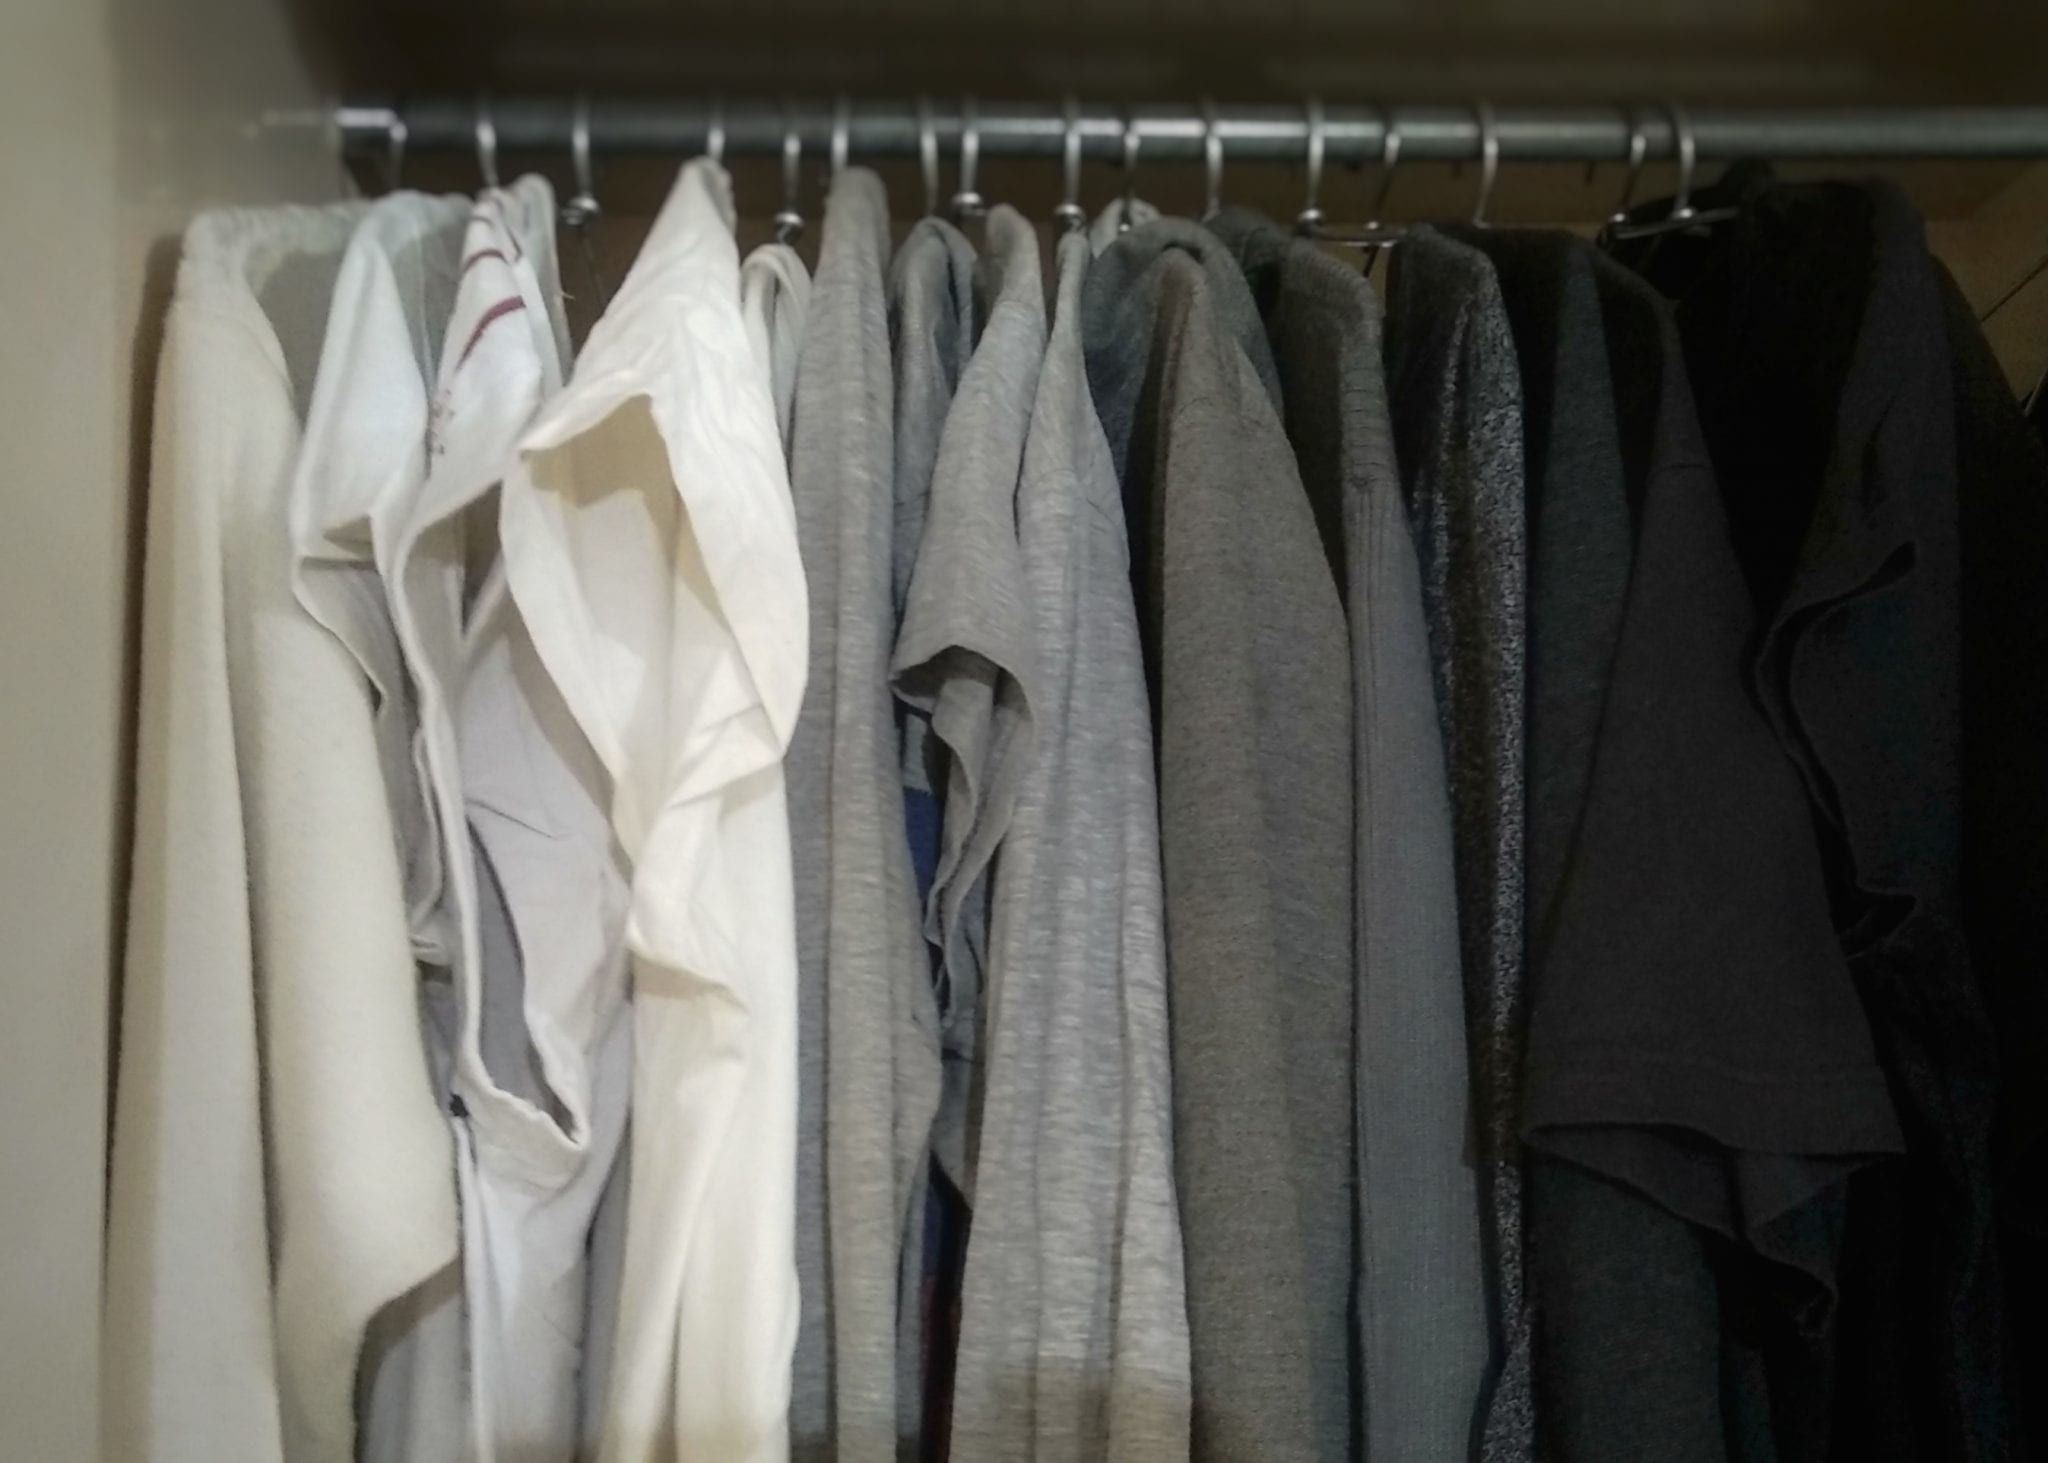 white and black clothes hanging on rack